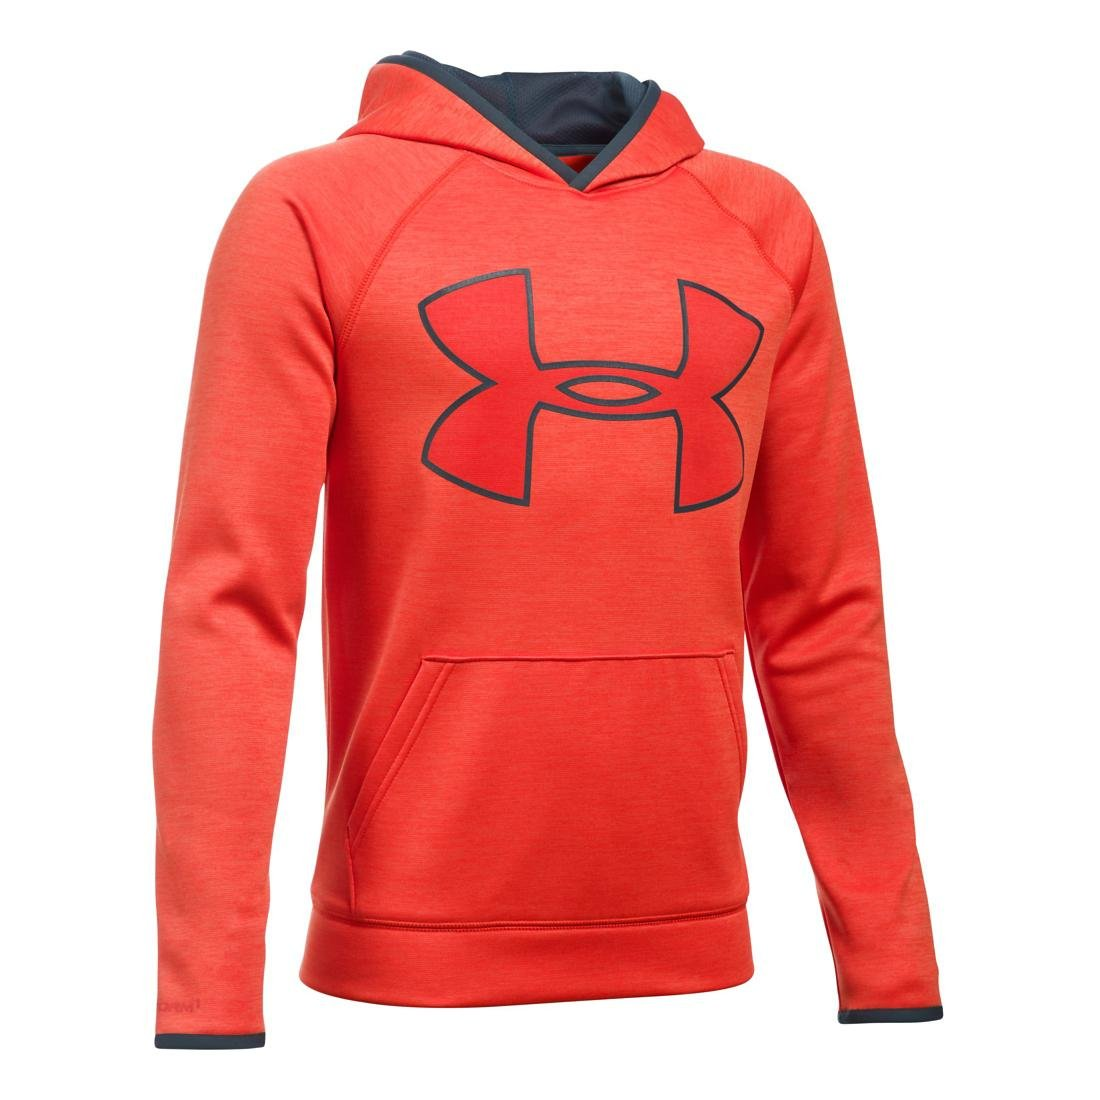 Boys Under Armour Boys Storm Armour Fleece Twist Highlight